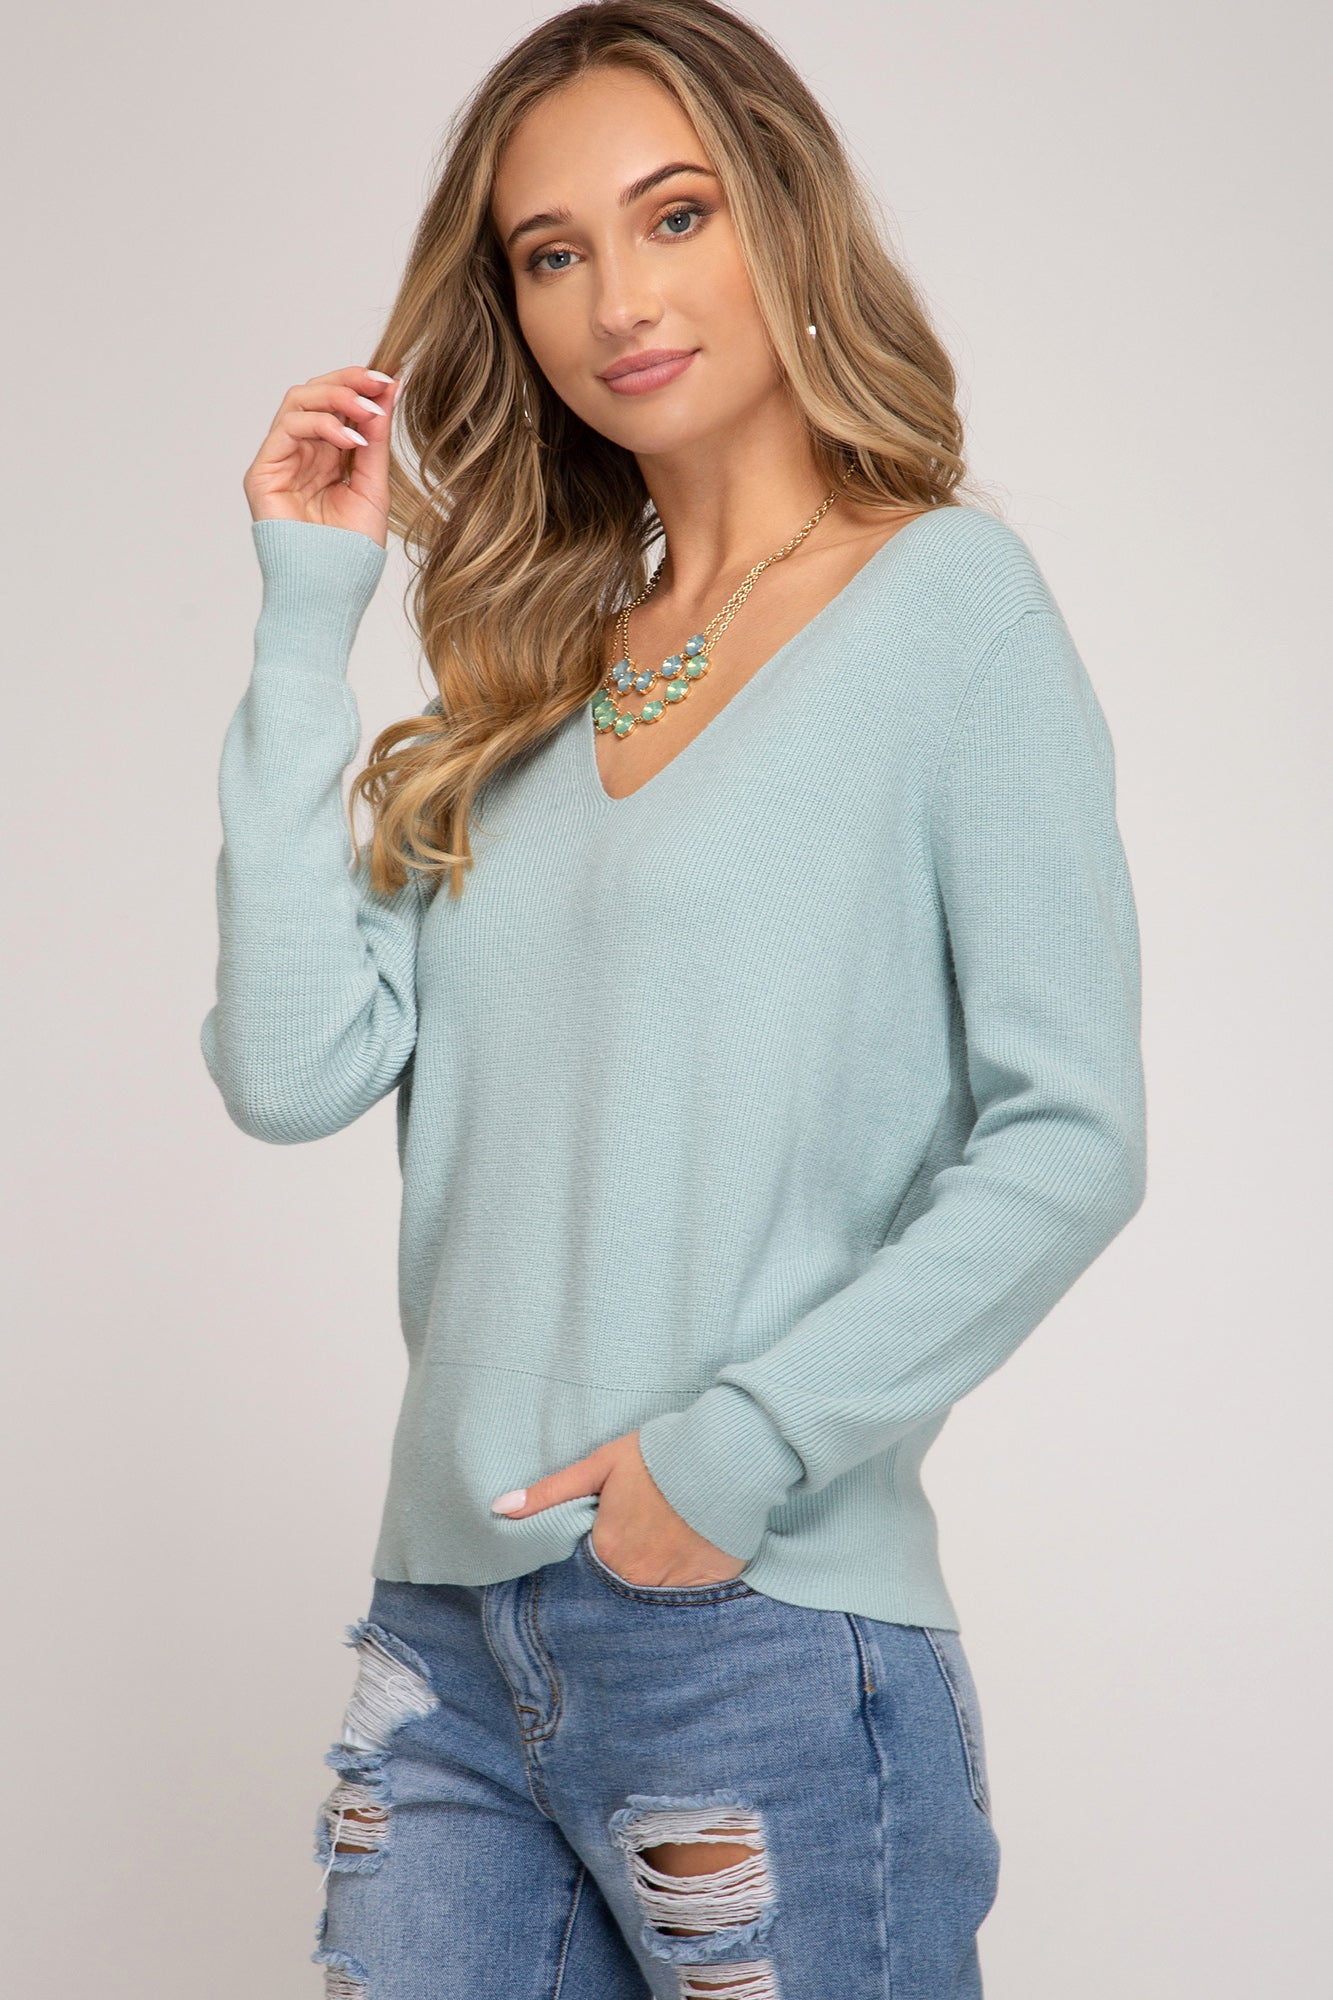 Sea Spray sweater